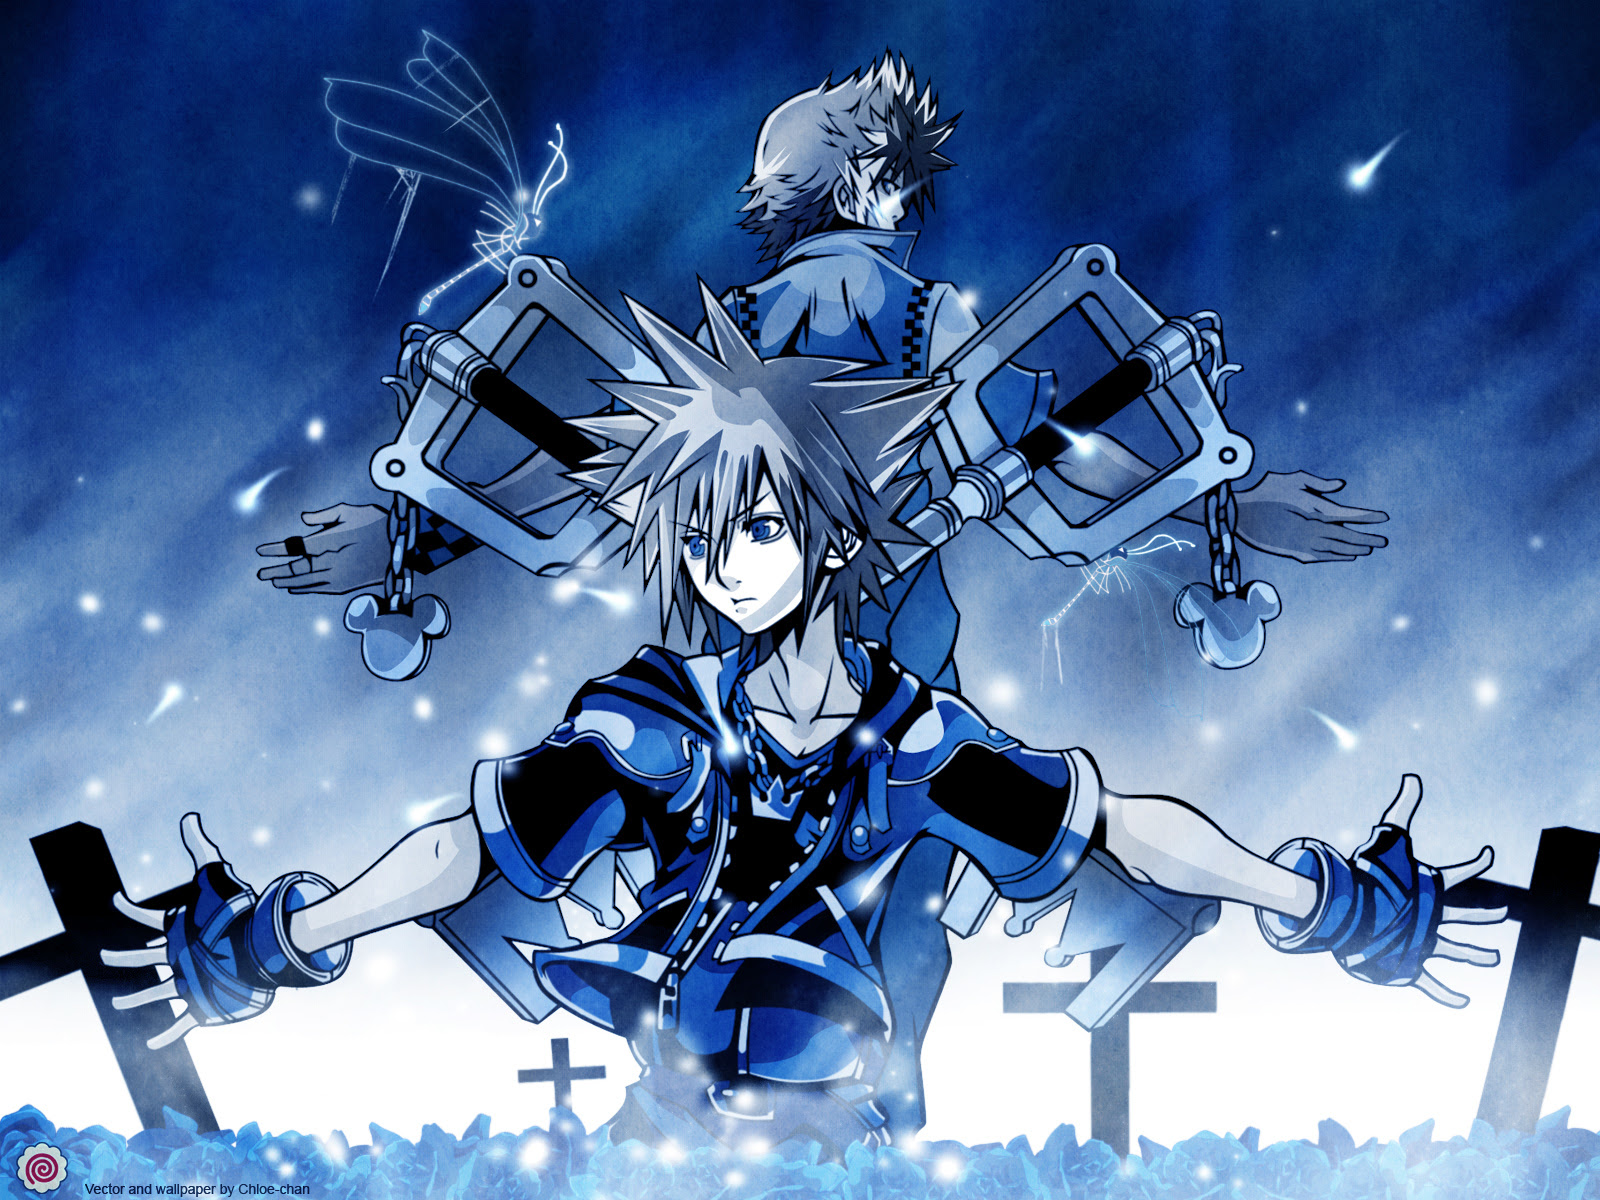 Kingdom Hearts Wallpaper Hd Iphone Easy Crafts Jewelry